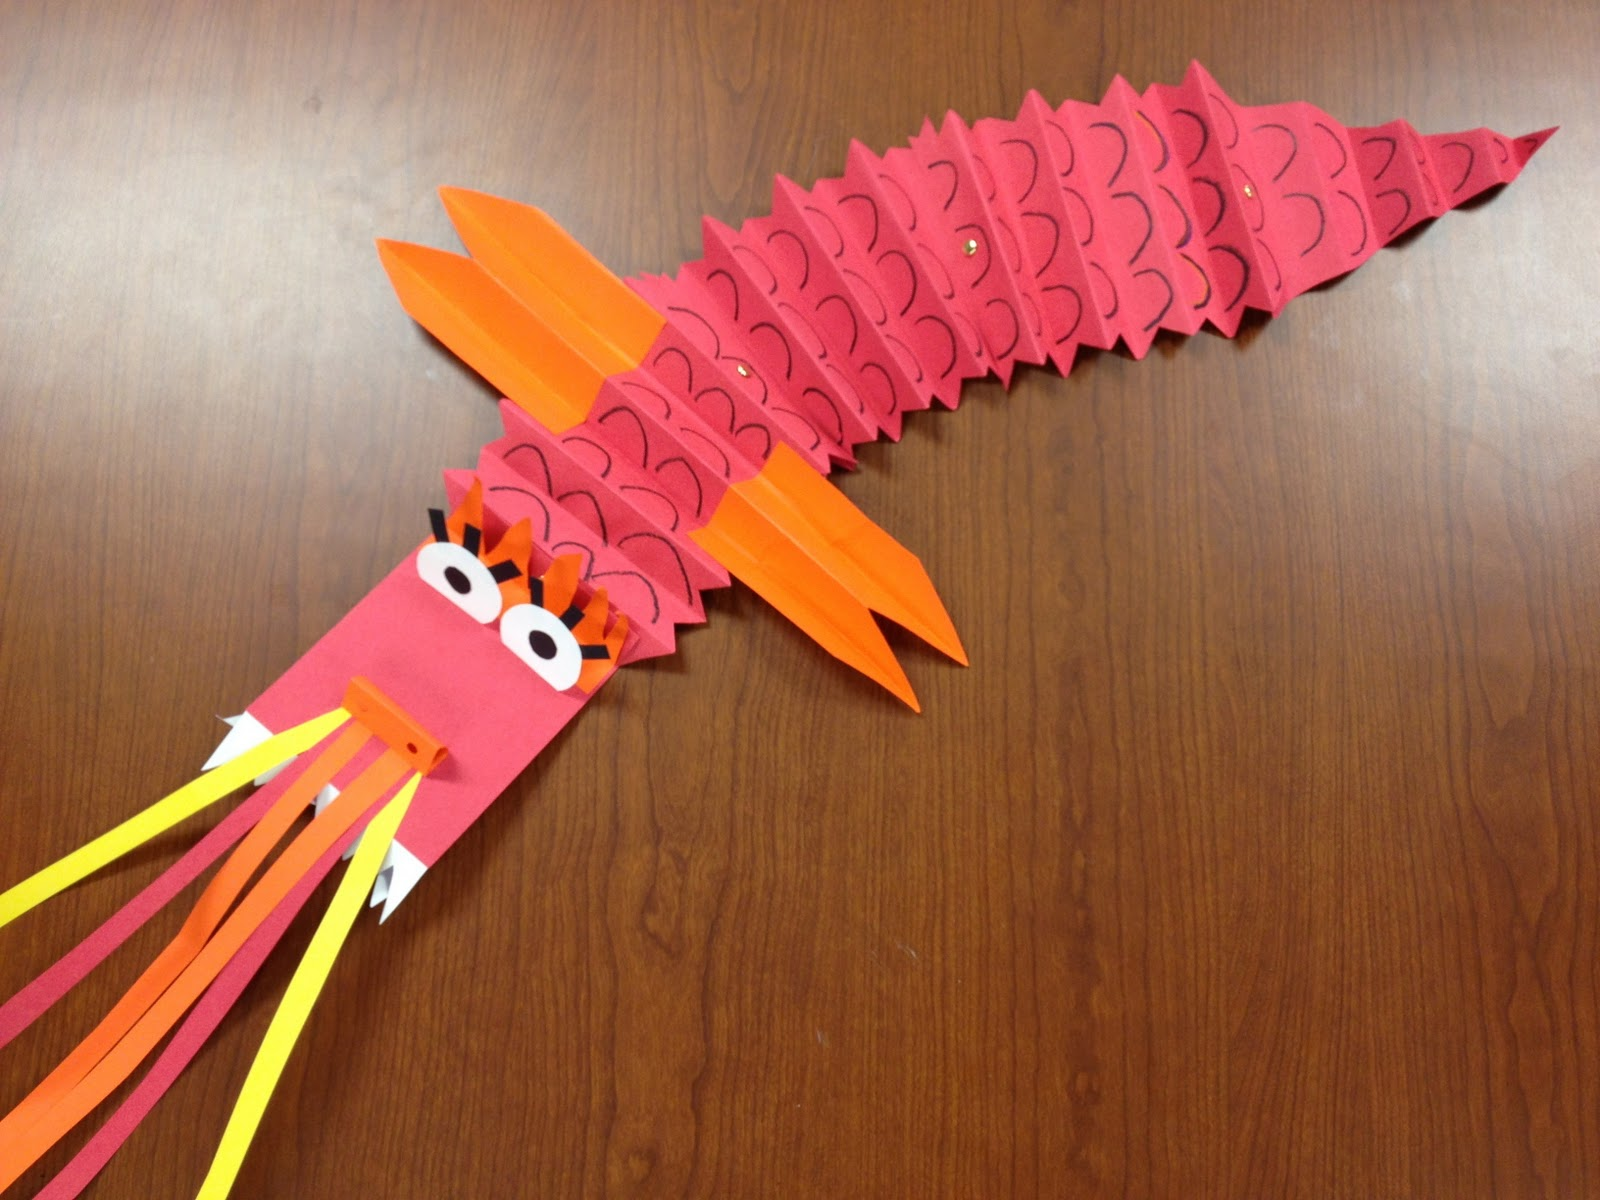 Gung Hey Fat Choy! Chinese New Year Dragons • TeachKidsArt